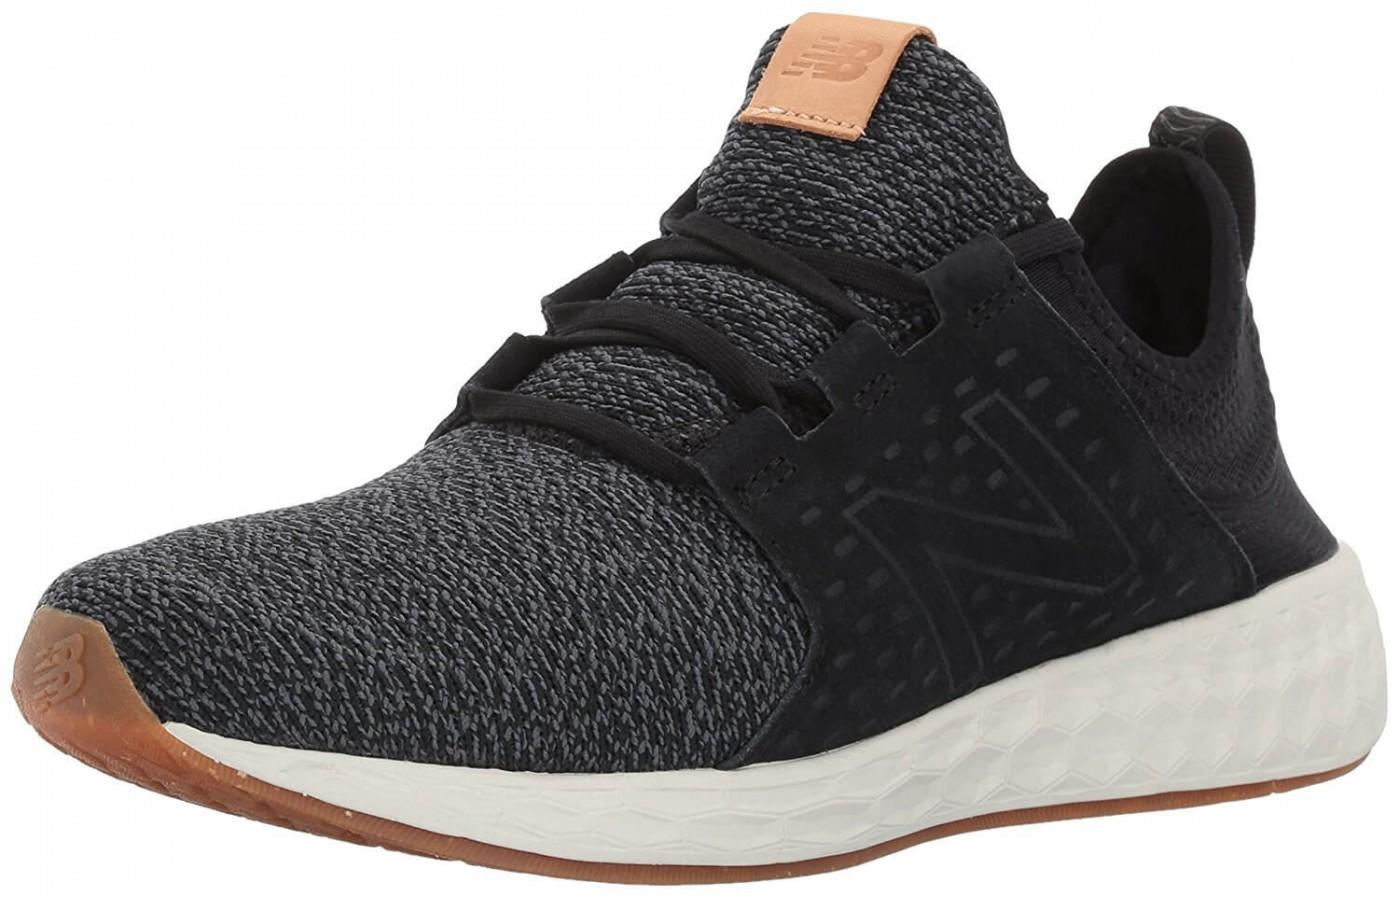 4c7fe29cc8d6 the New Balance Fresh Foam Cruz is a stylish and comfortable trainer ...